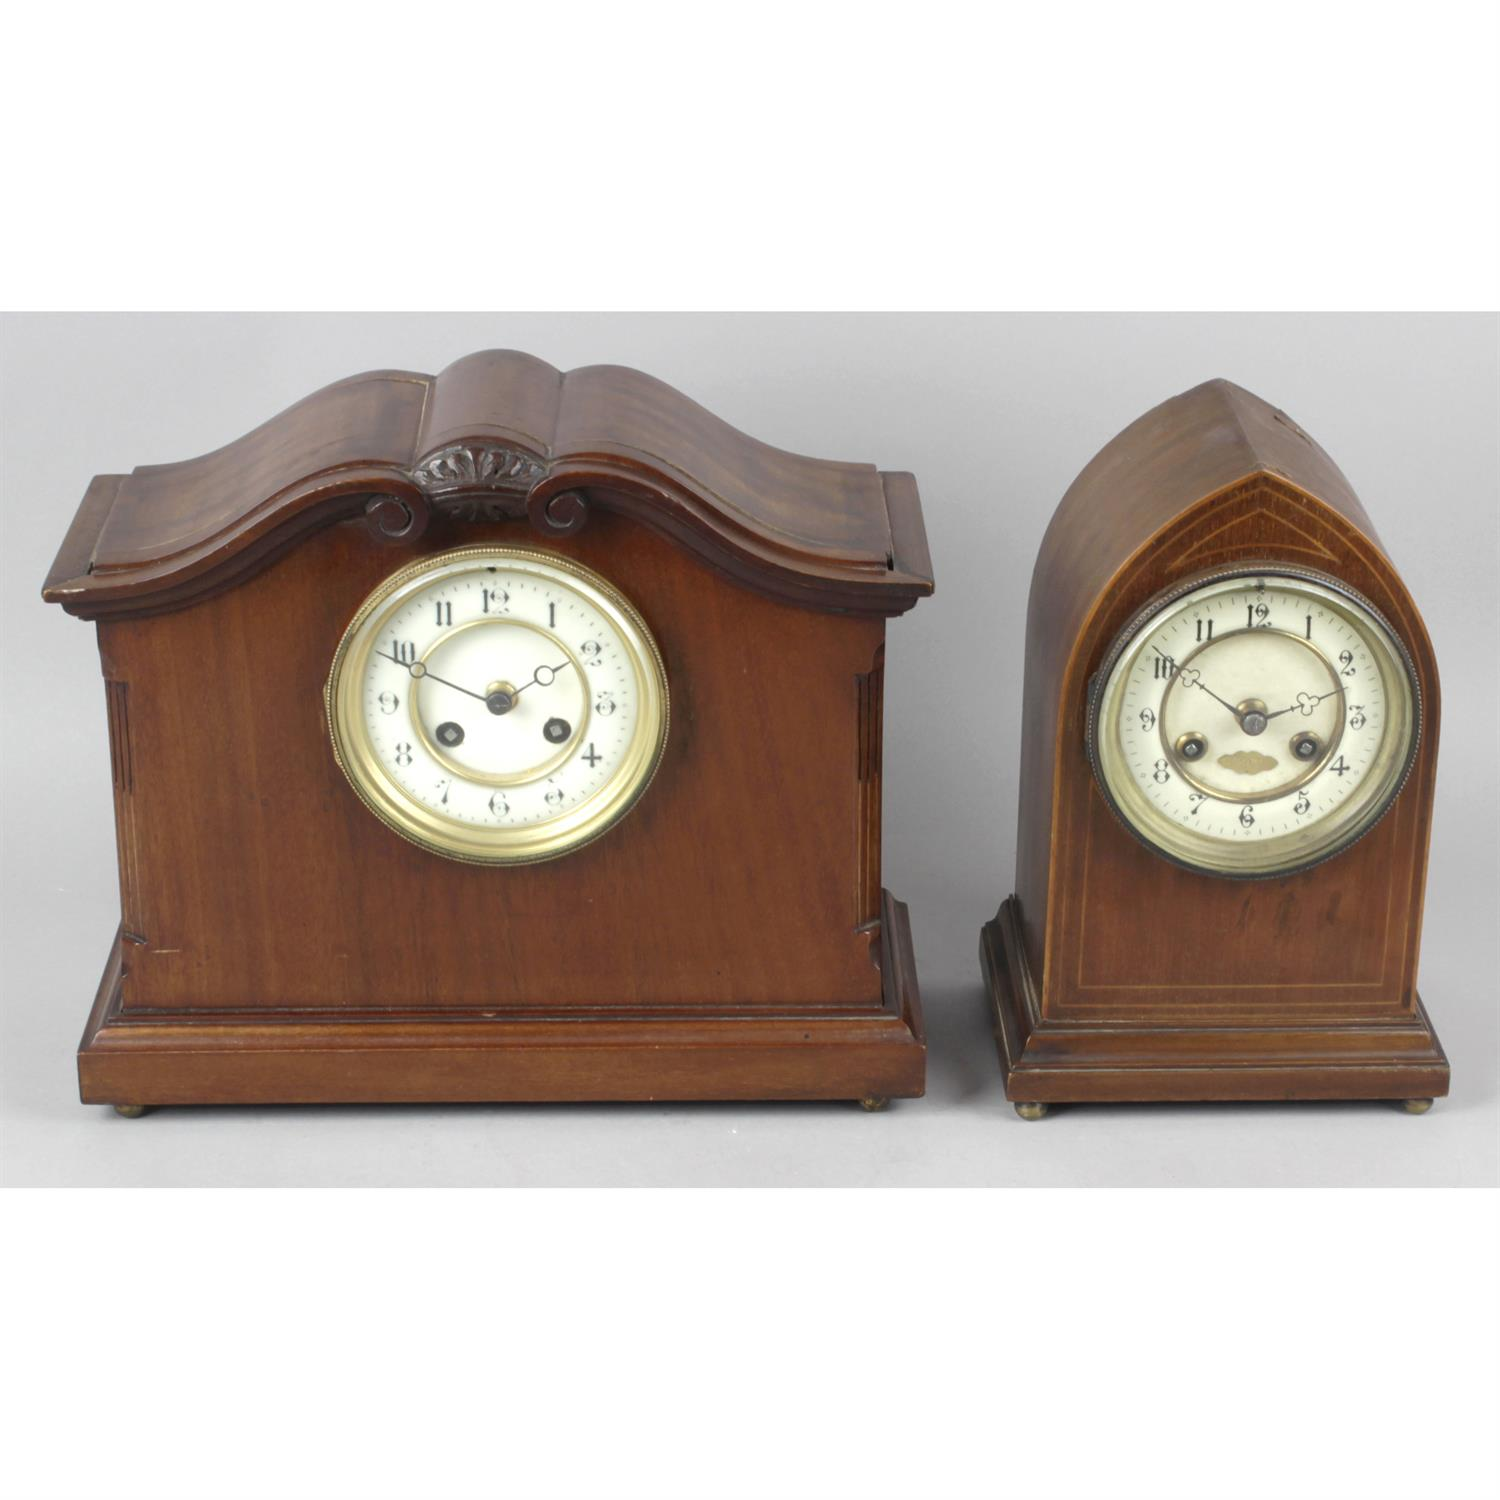 An Edwardian mahogany and line inlaid cased lancet clock